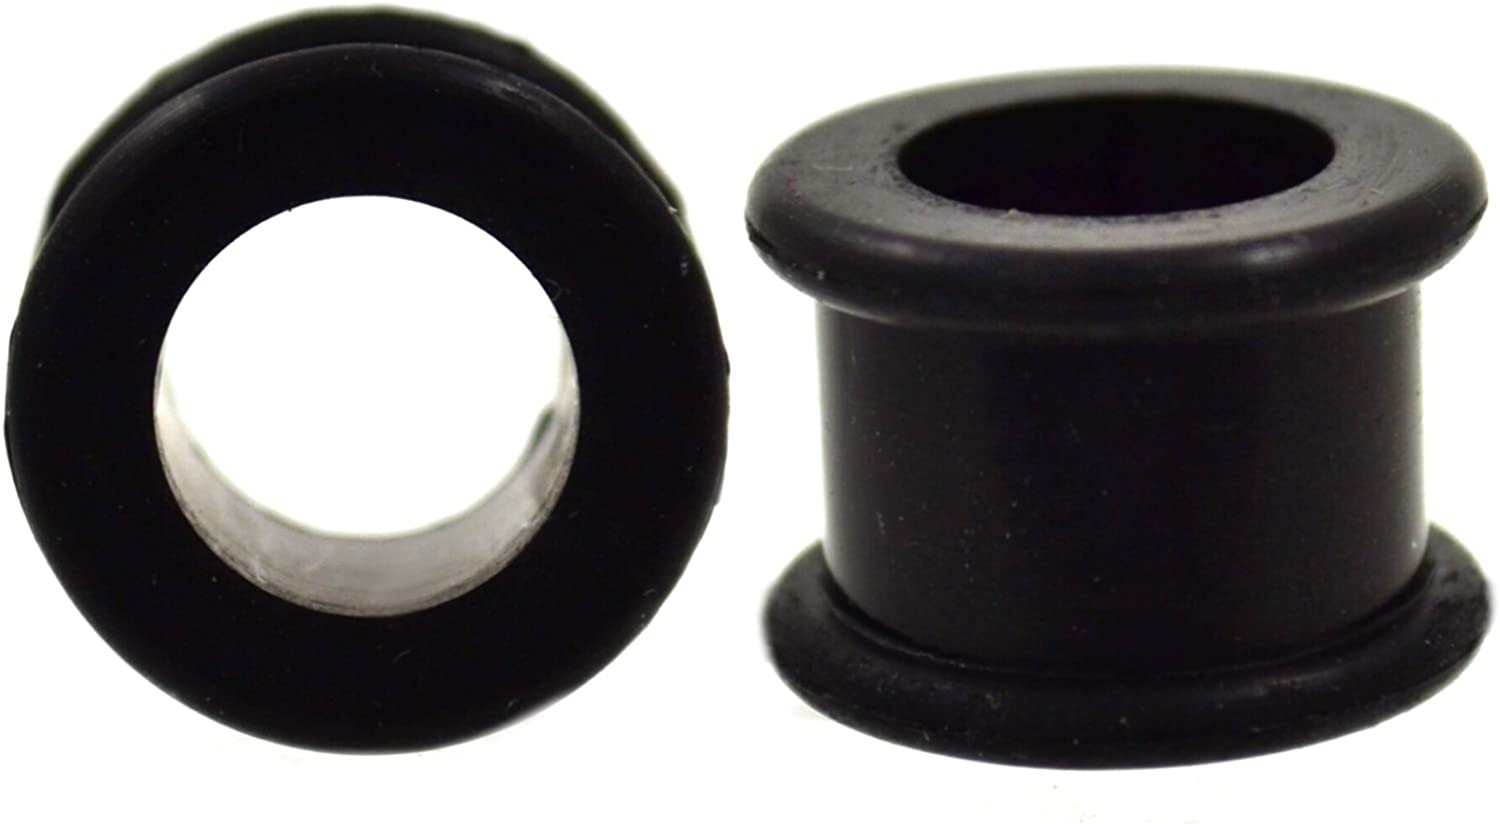 Pair of Double Flared Black Ear Tunnels Plugs Made w/Flexible Silicone